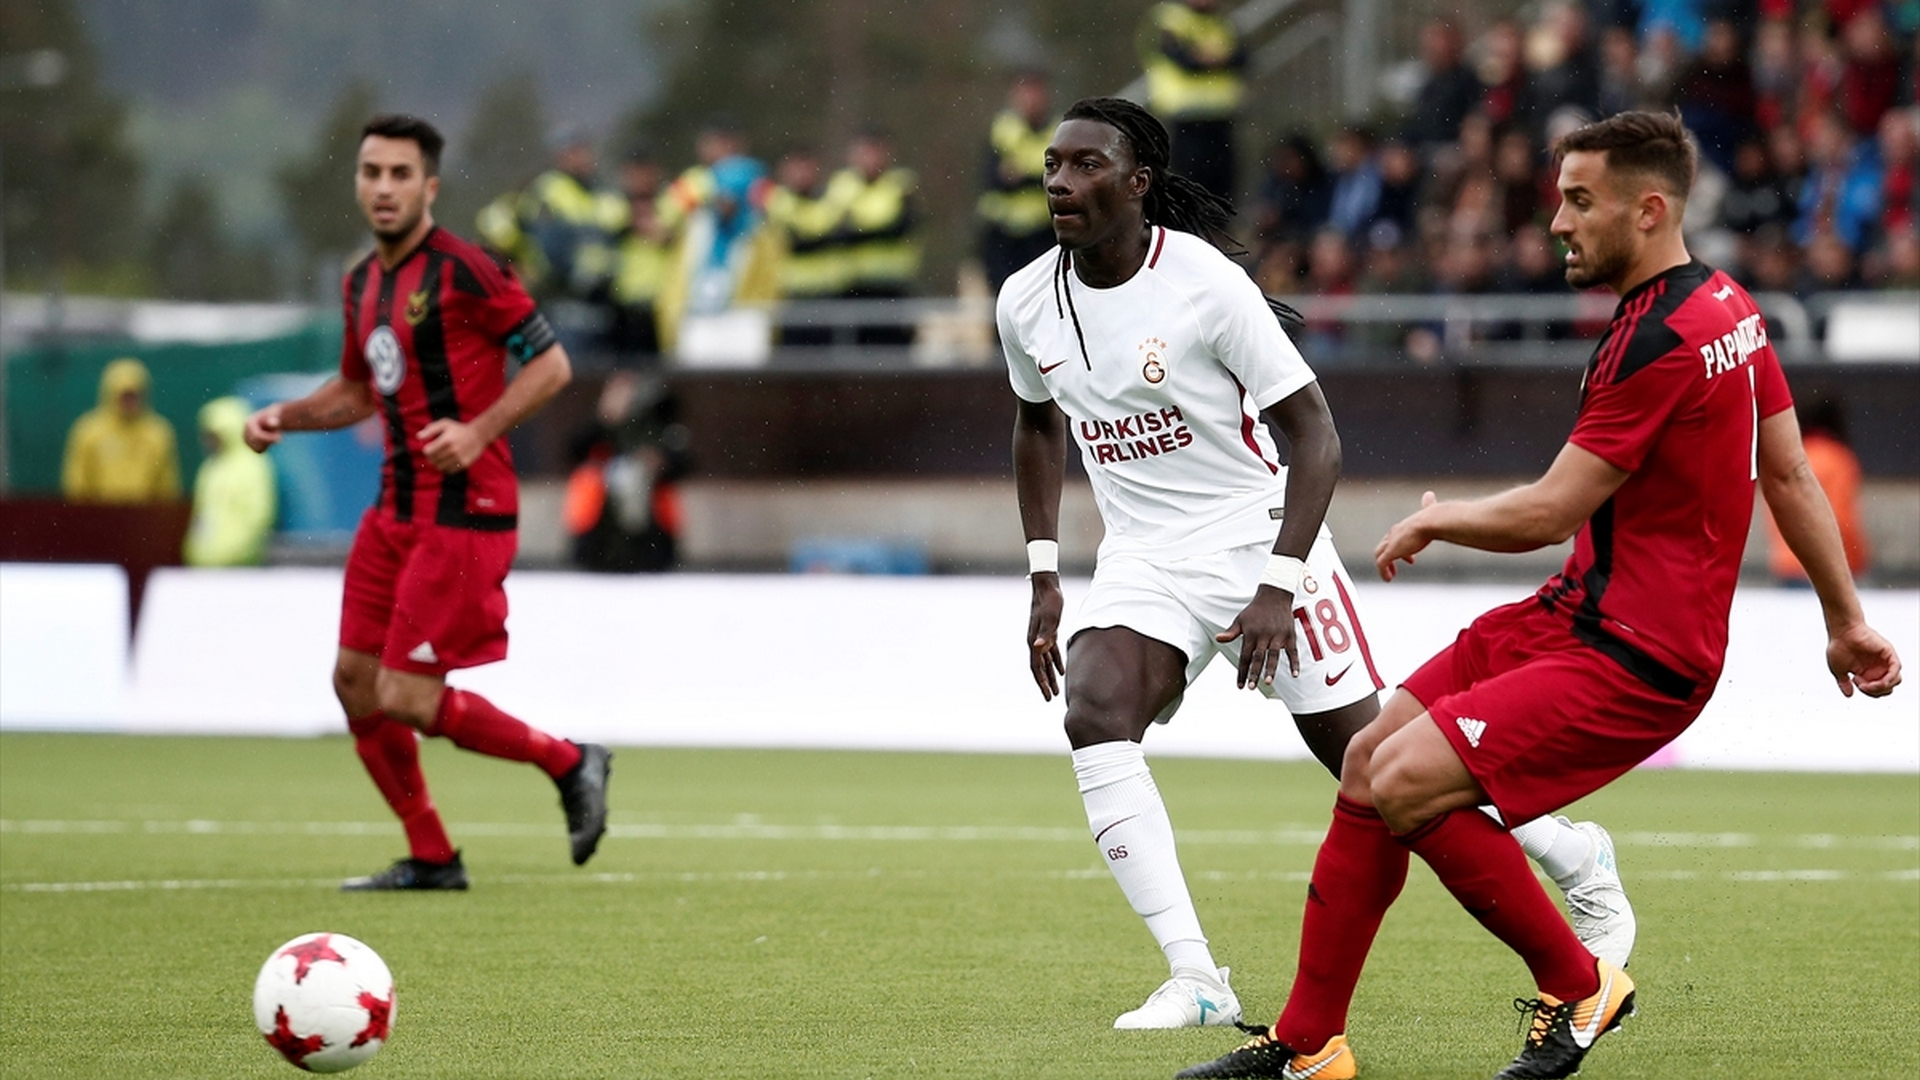 Bafetimbi Gomis Ostersunds Galatasaray 1372017 UEL